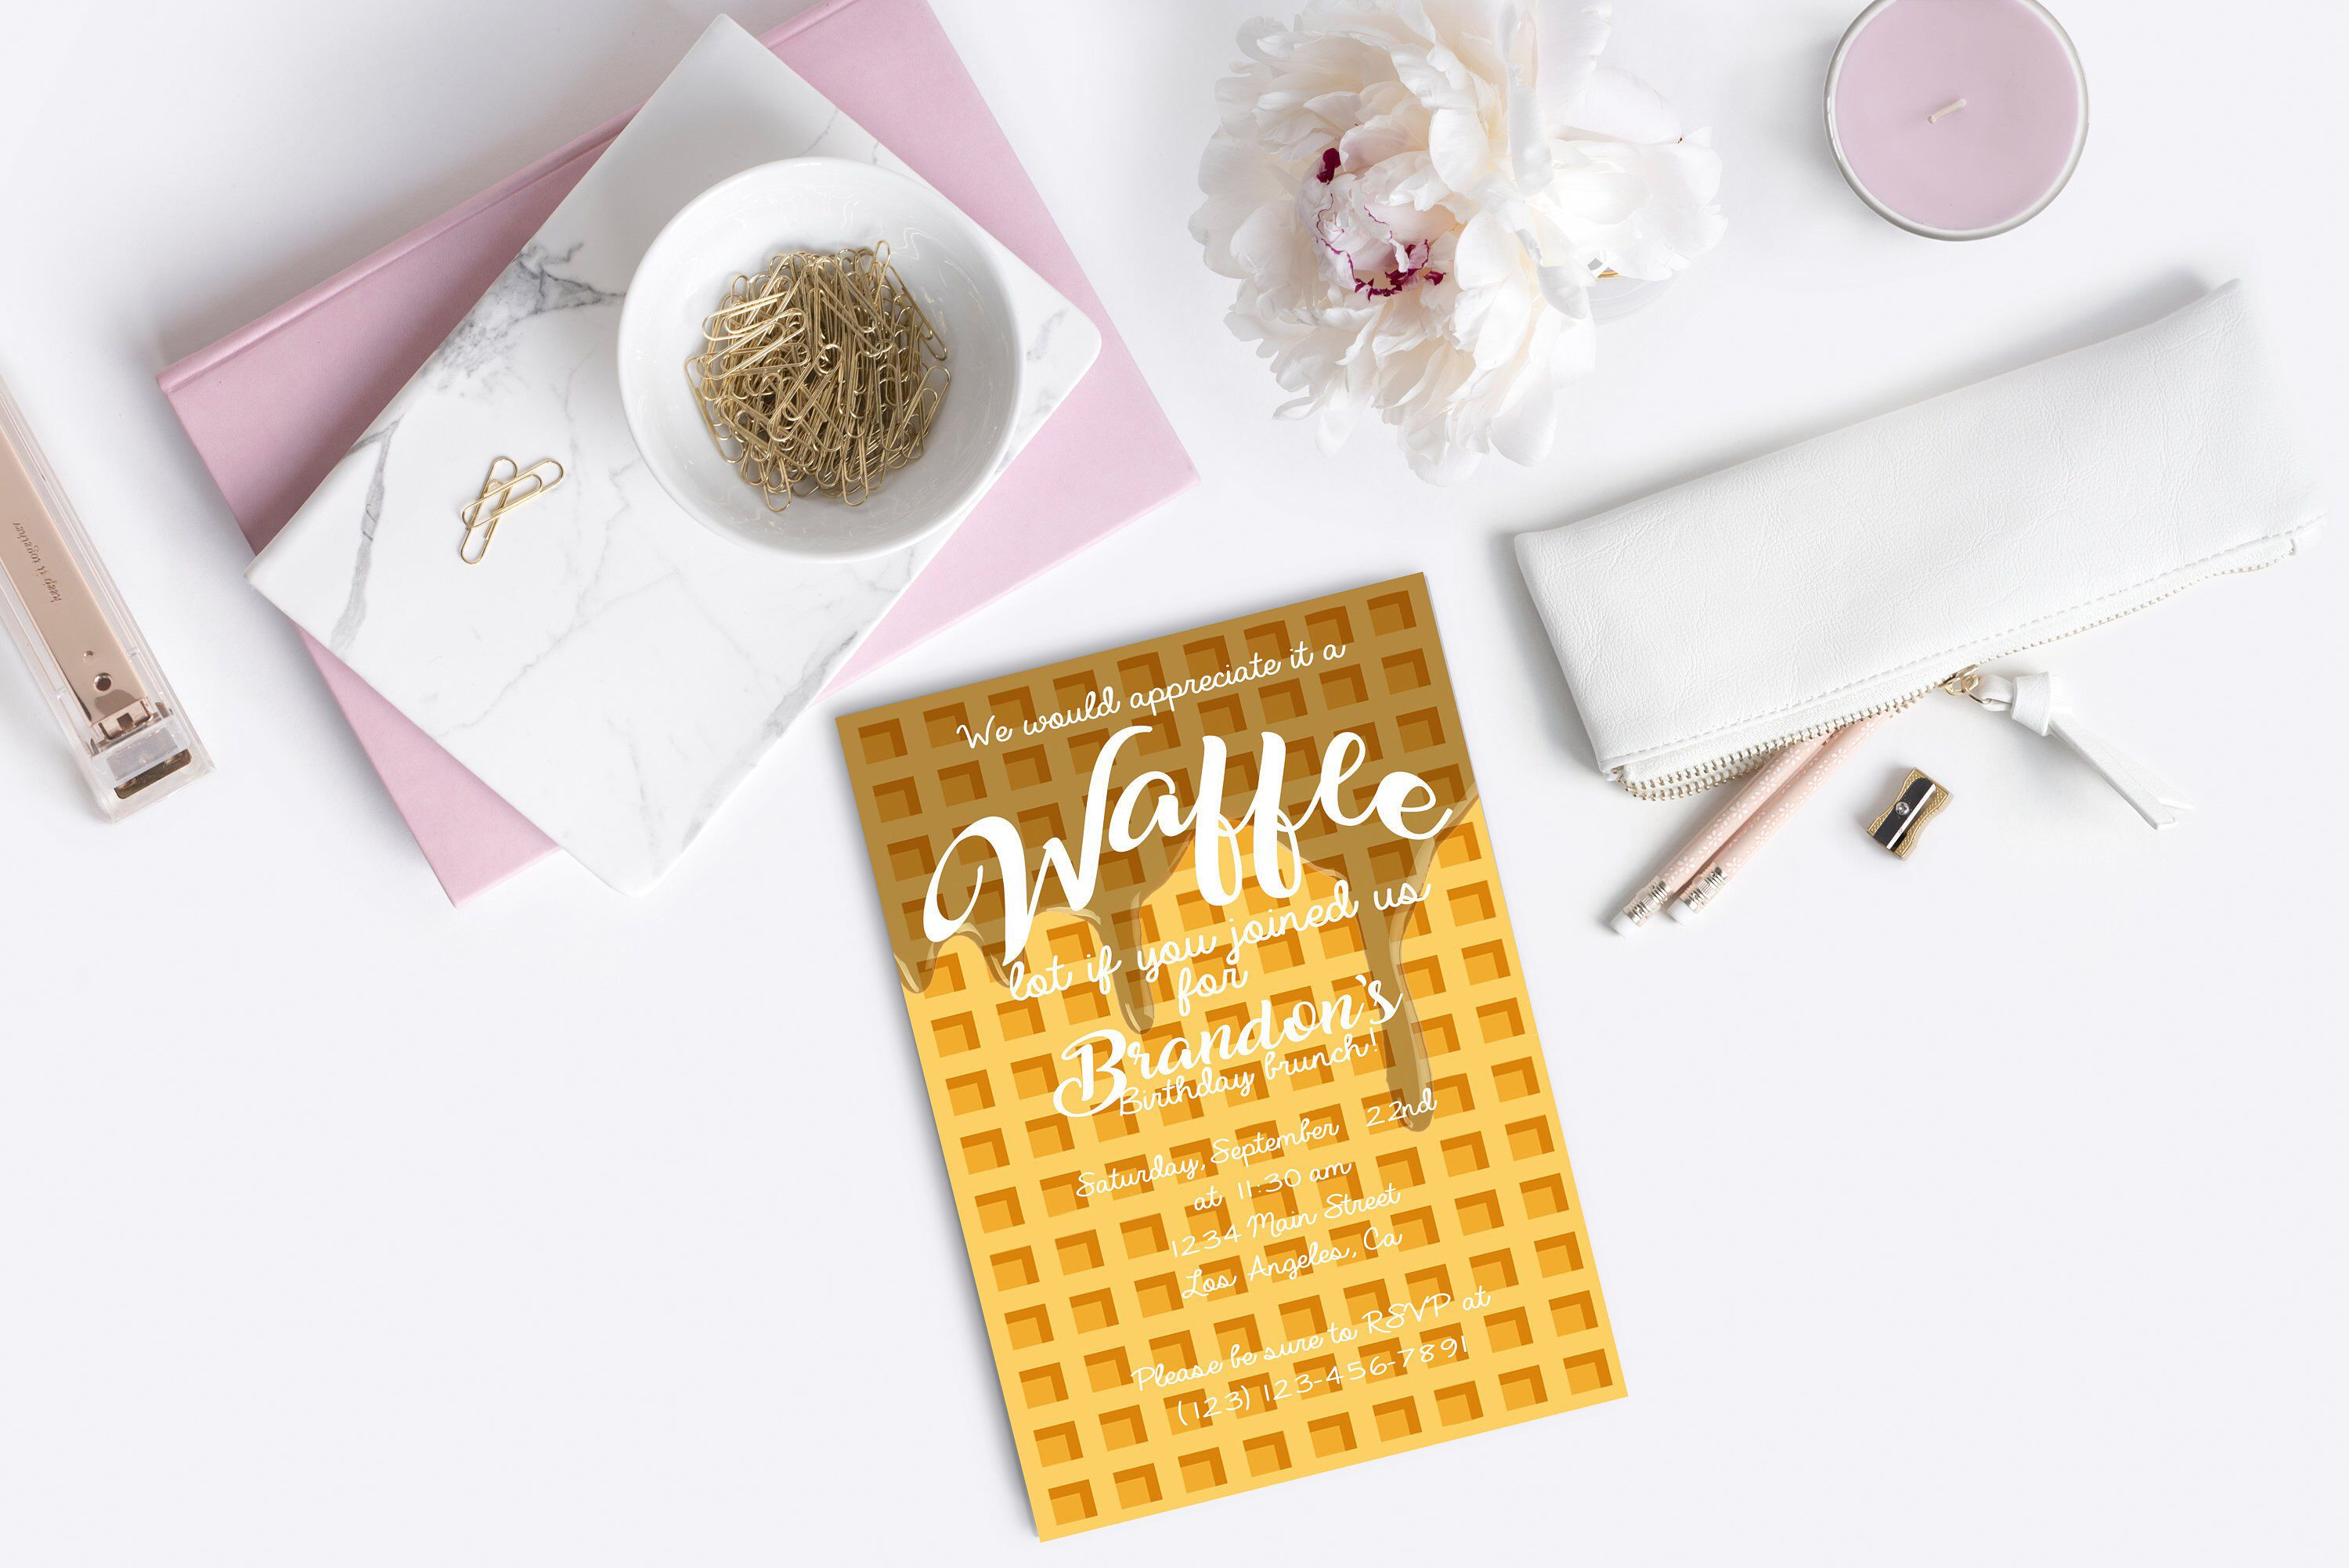 Waffle Party Birthday Brunch Waffle Invitation Waffle Birthday Waffle Invite Waffle Party Invite Breakfast Party Brunch Birthday Birthday Breakfast Party Breakfast Party Birthday Brunch